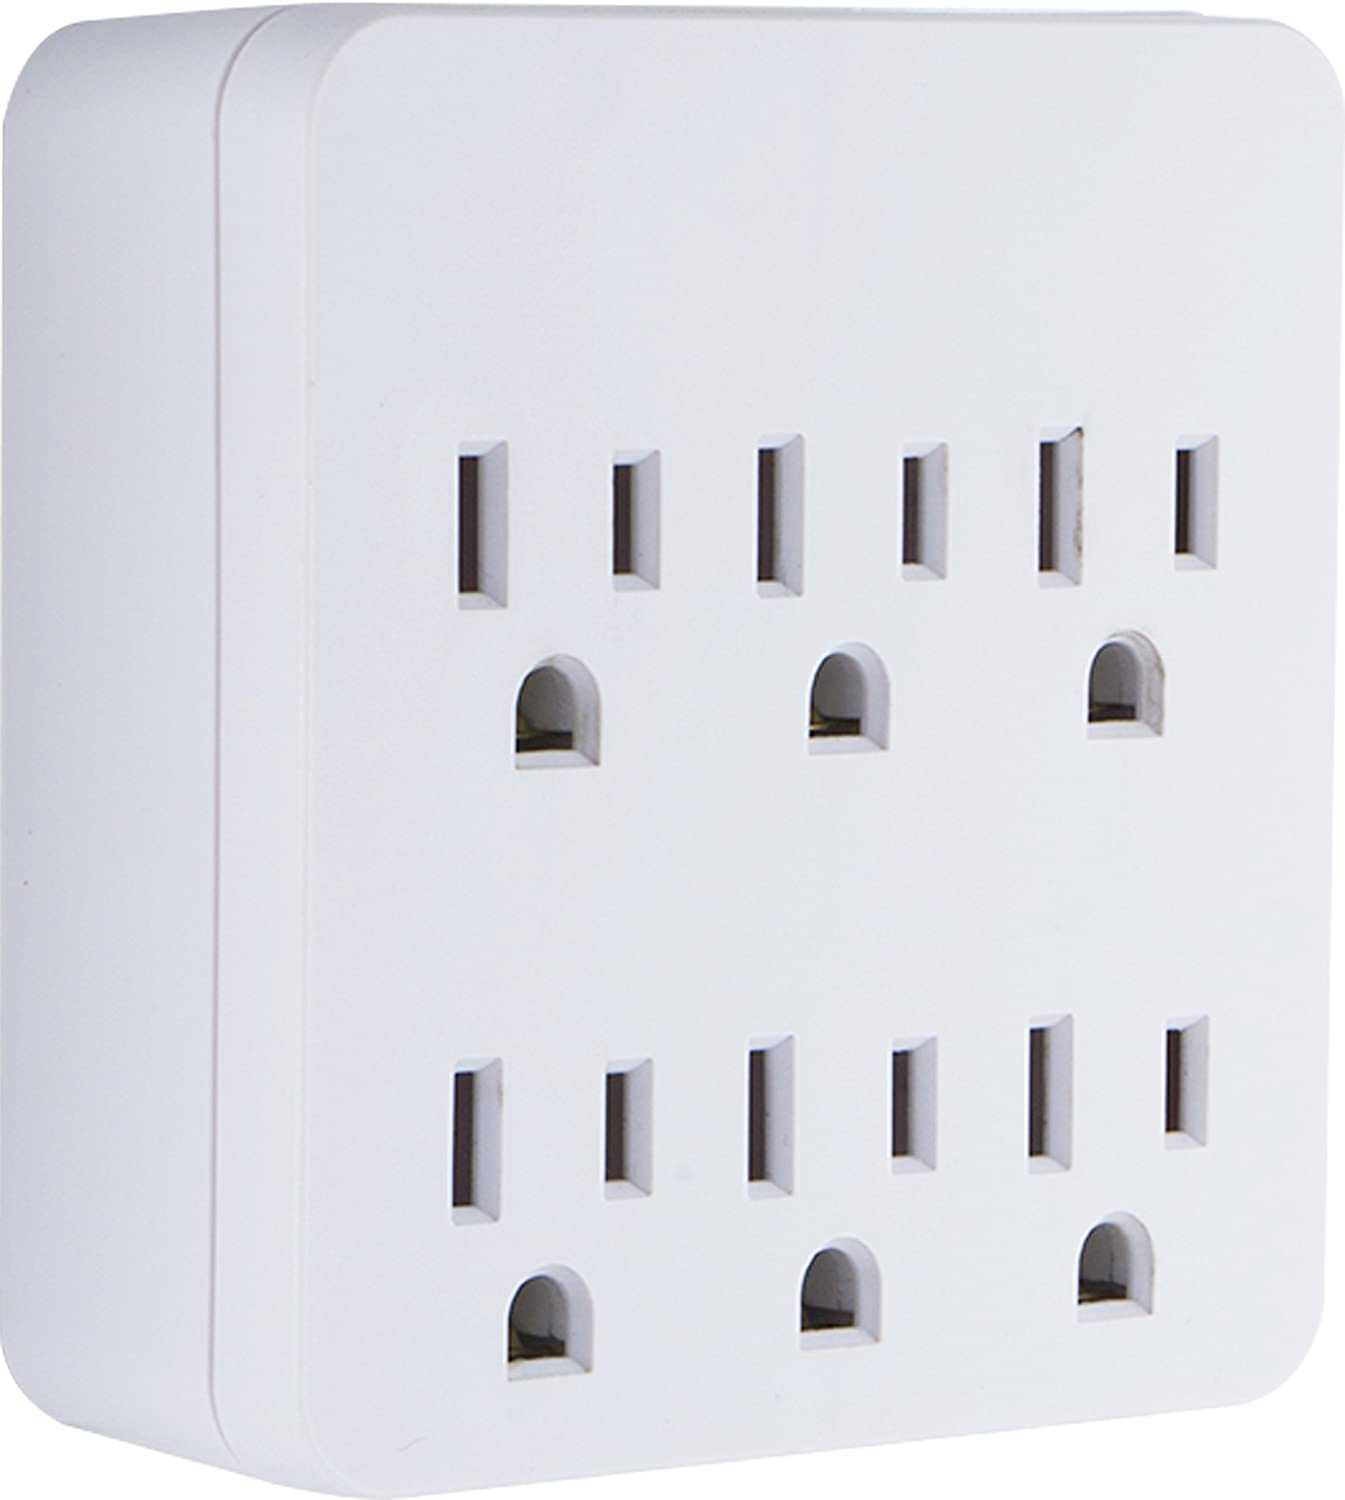 GE Pro Surge Protector with 6 Outlets, Wall Charger, Charging Station, 1020 Joules Protection Rating, Automatic Shutdown, Sleek Design, White, 36727